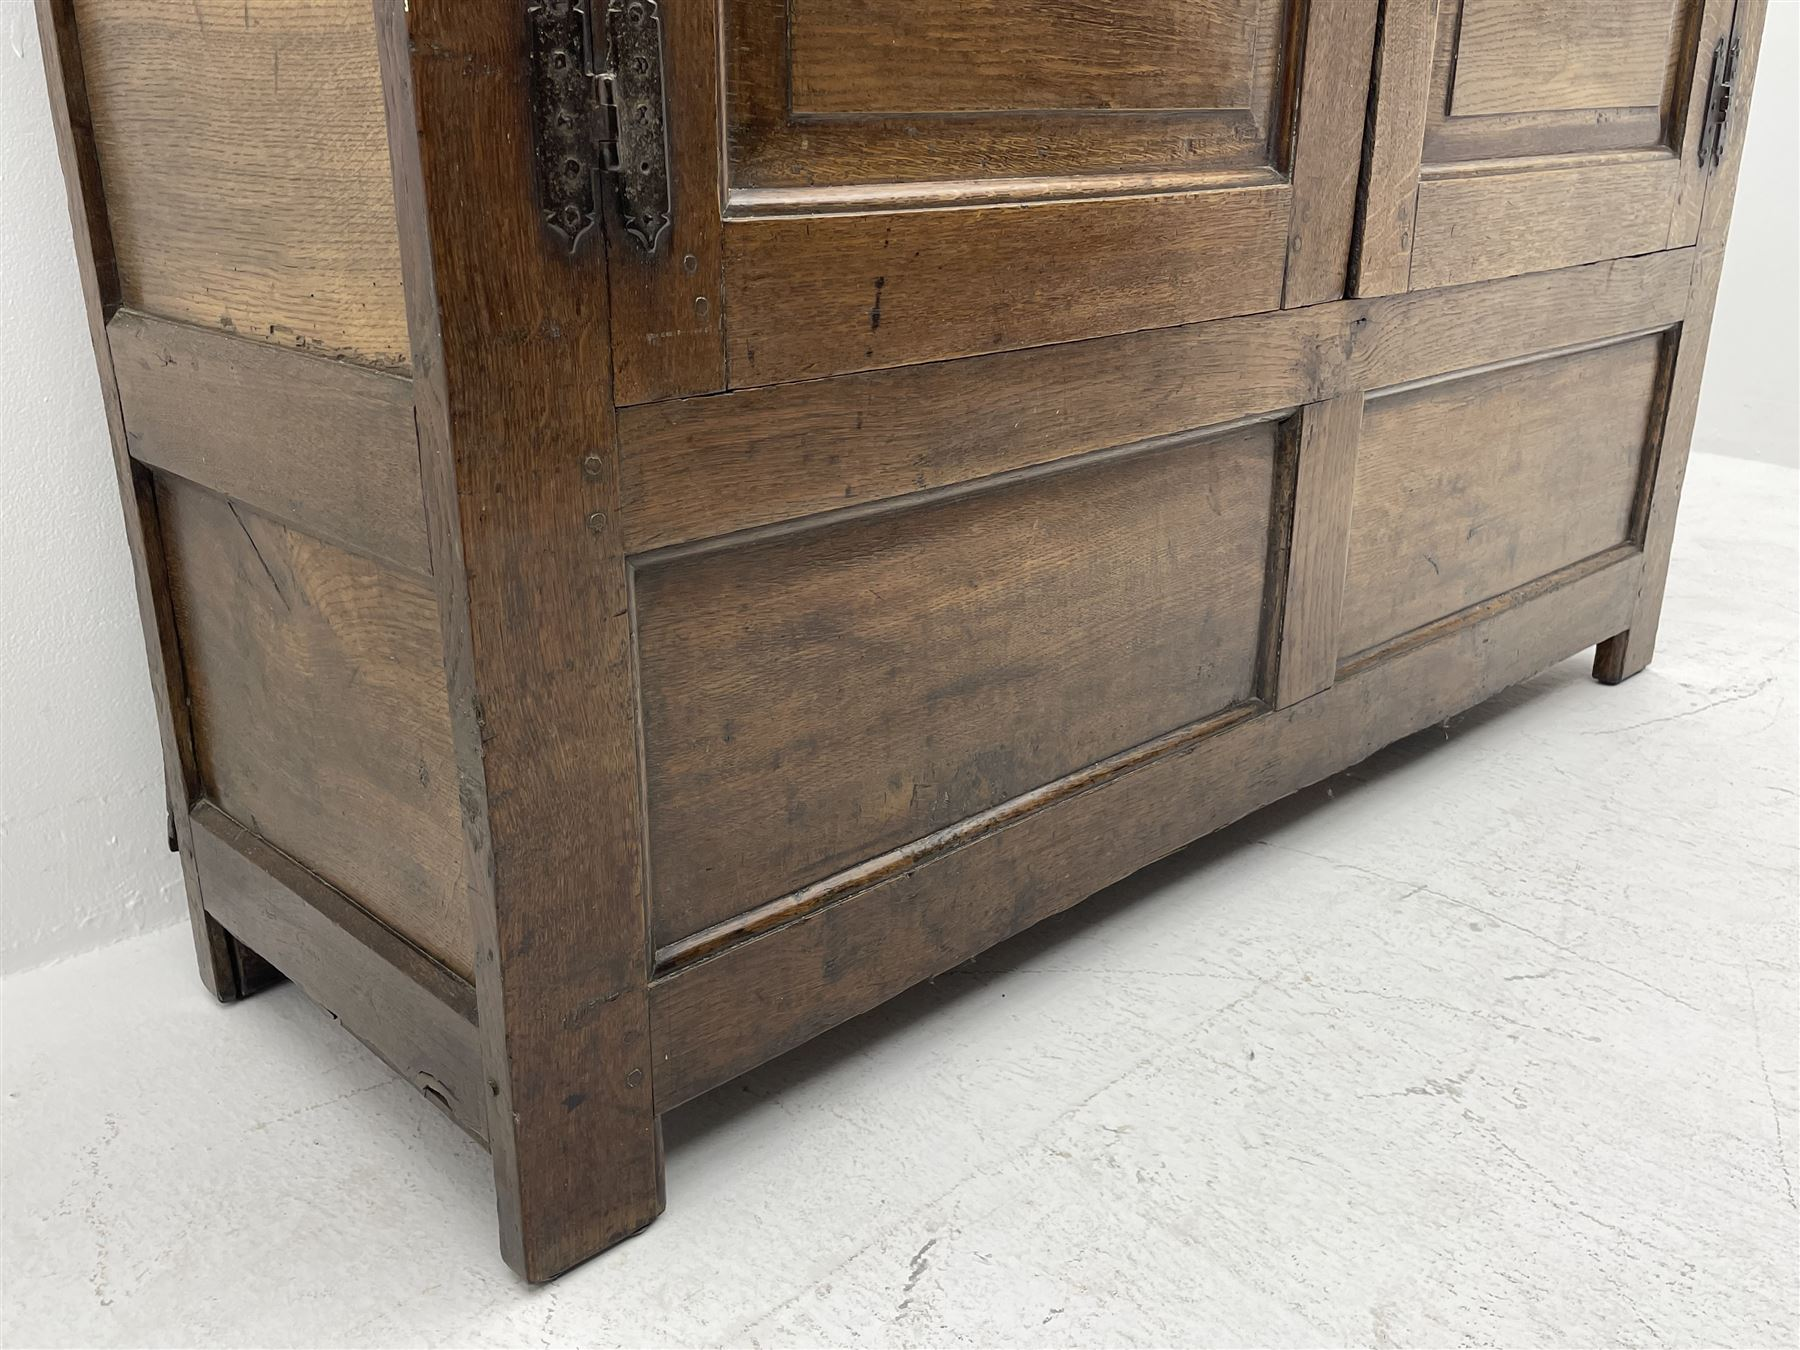 18th century and later oak livery cupboard - Image 6 of 8